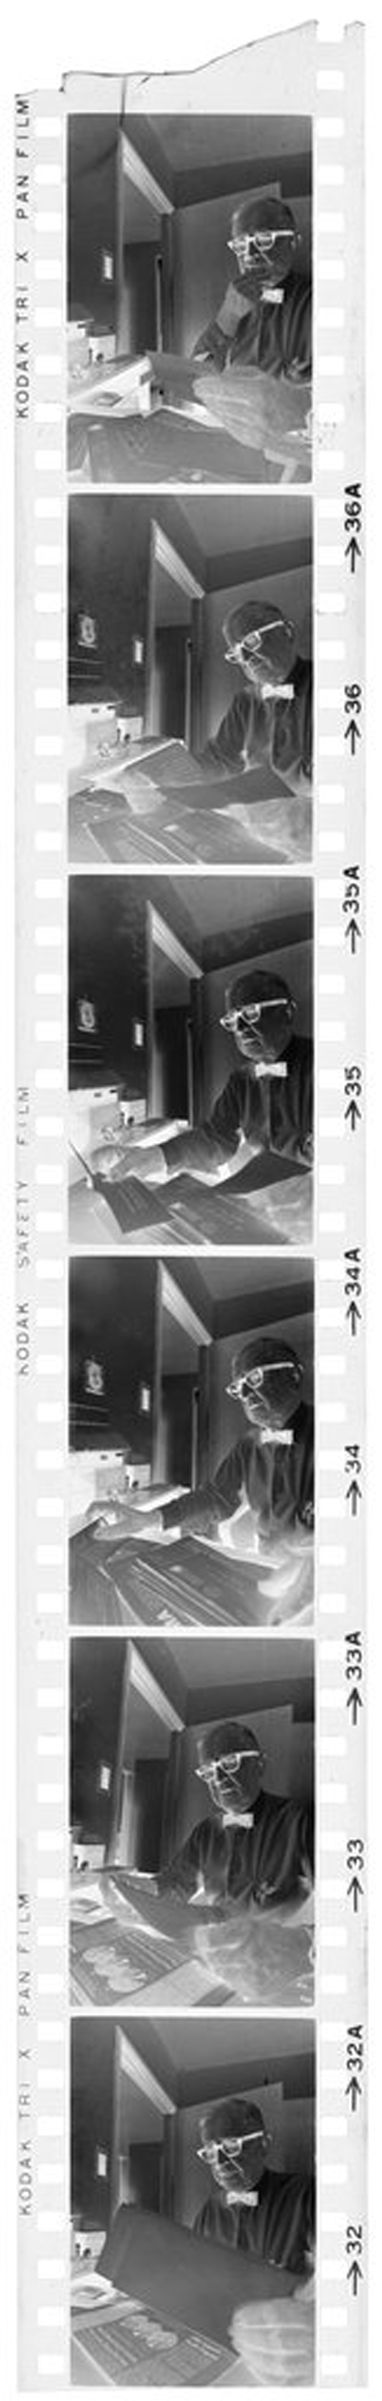 Untitled (Dr. Herman M. Juergens At Desk In Office Looking At Papers)